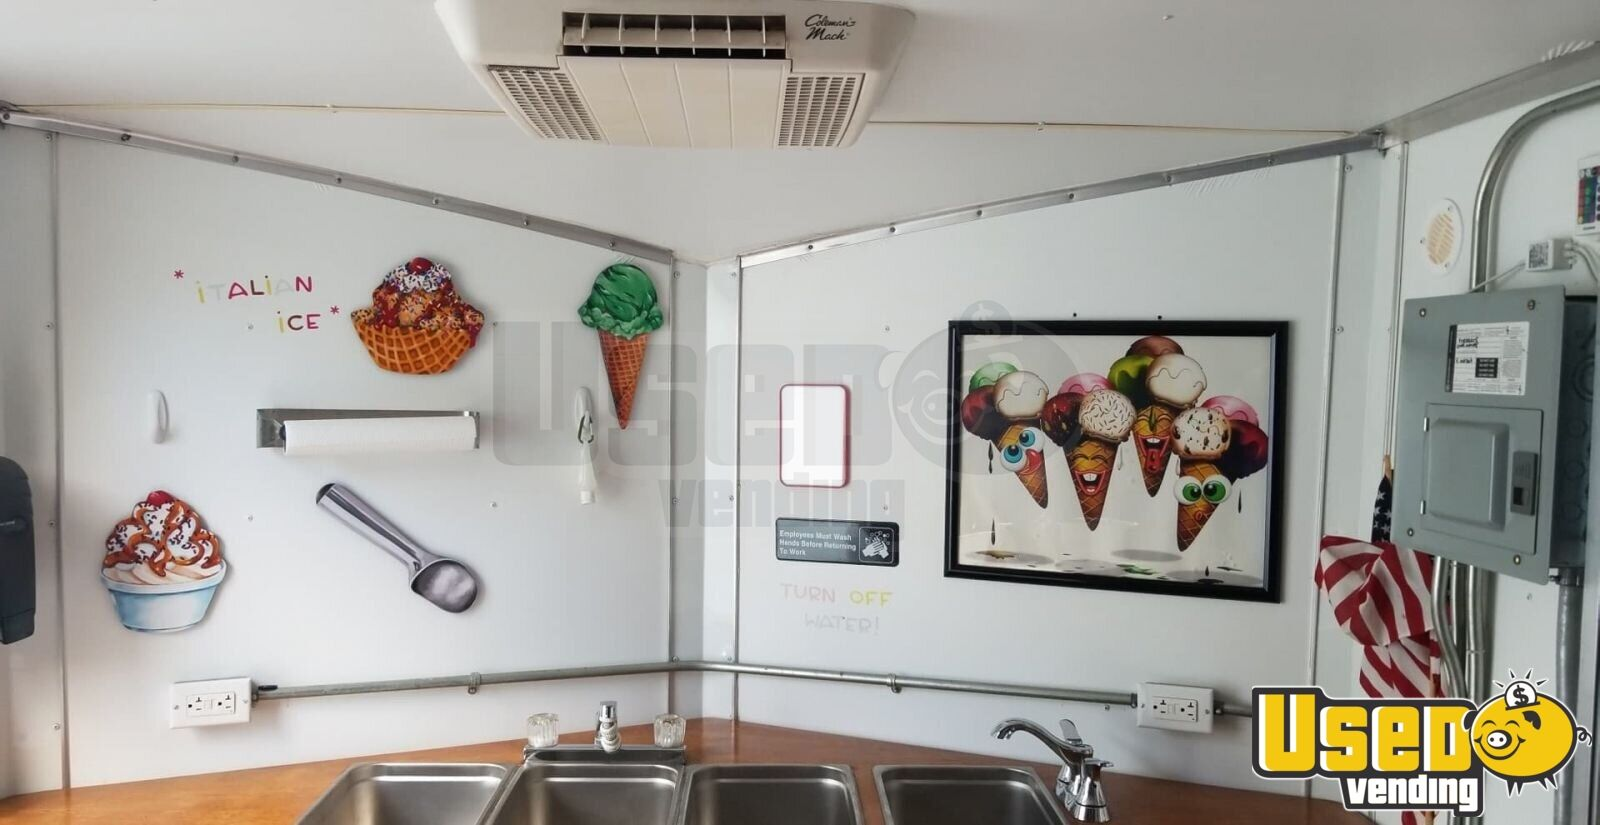 2014 Look Ice Cream Trailer Cabinets Florida for Sale - 5